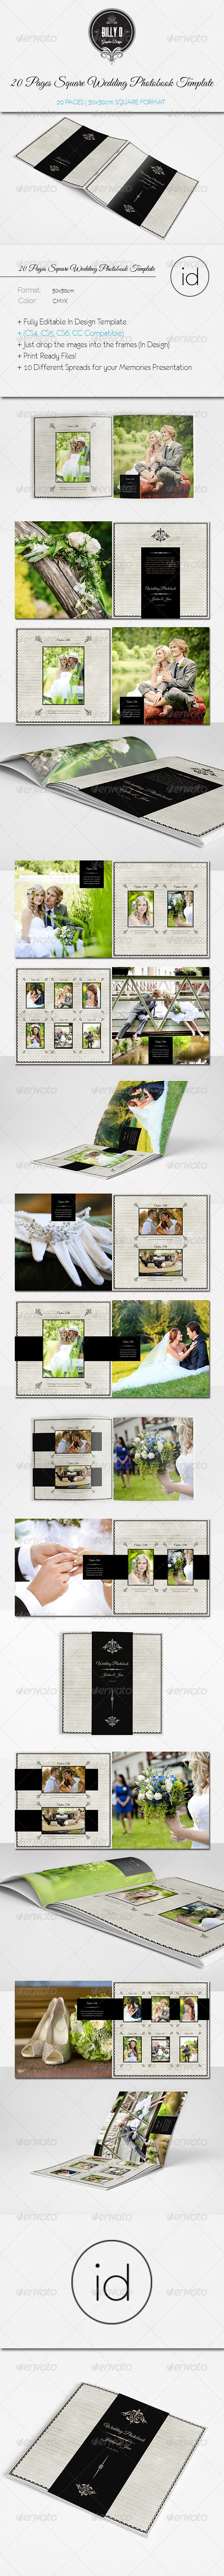 20 Pages Square Wedding Photobook Template